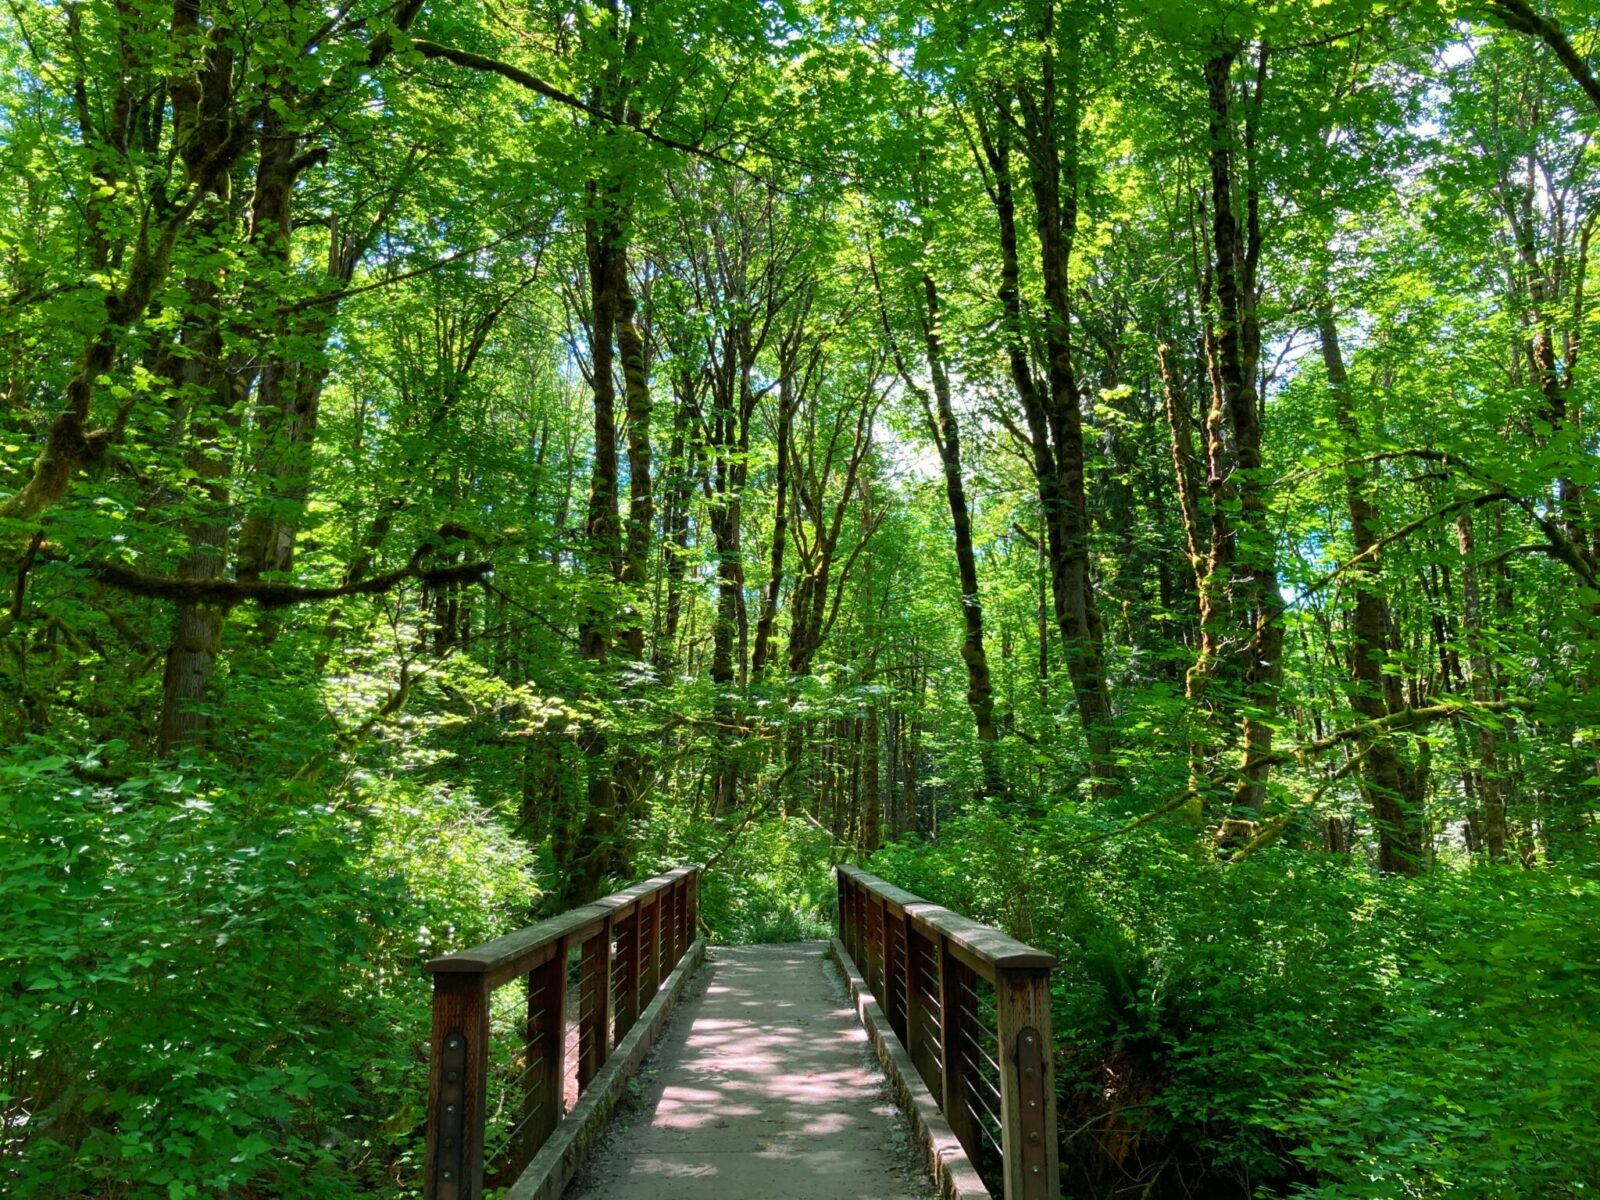 The best hikes in Issaquah include the Tradition Lake loop on Tiger Mountain. Here the forest is green upon green with spring growth. In the middle of the trees and undergrowth, a brown bridge over a creek leads into the forest